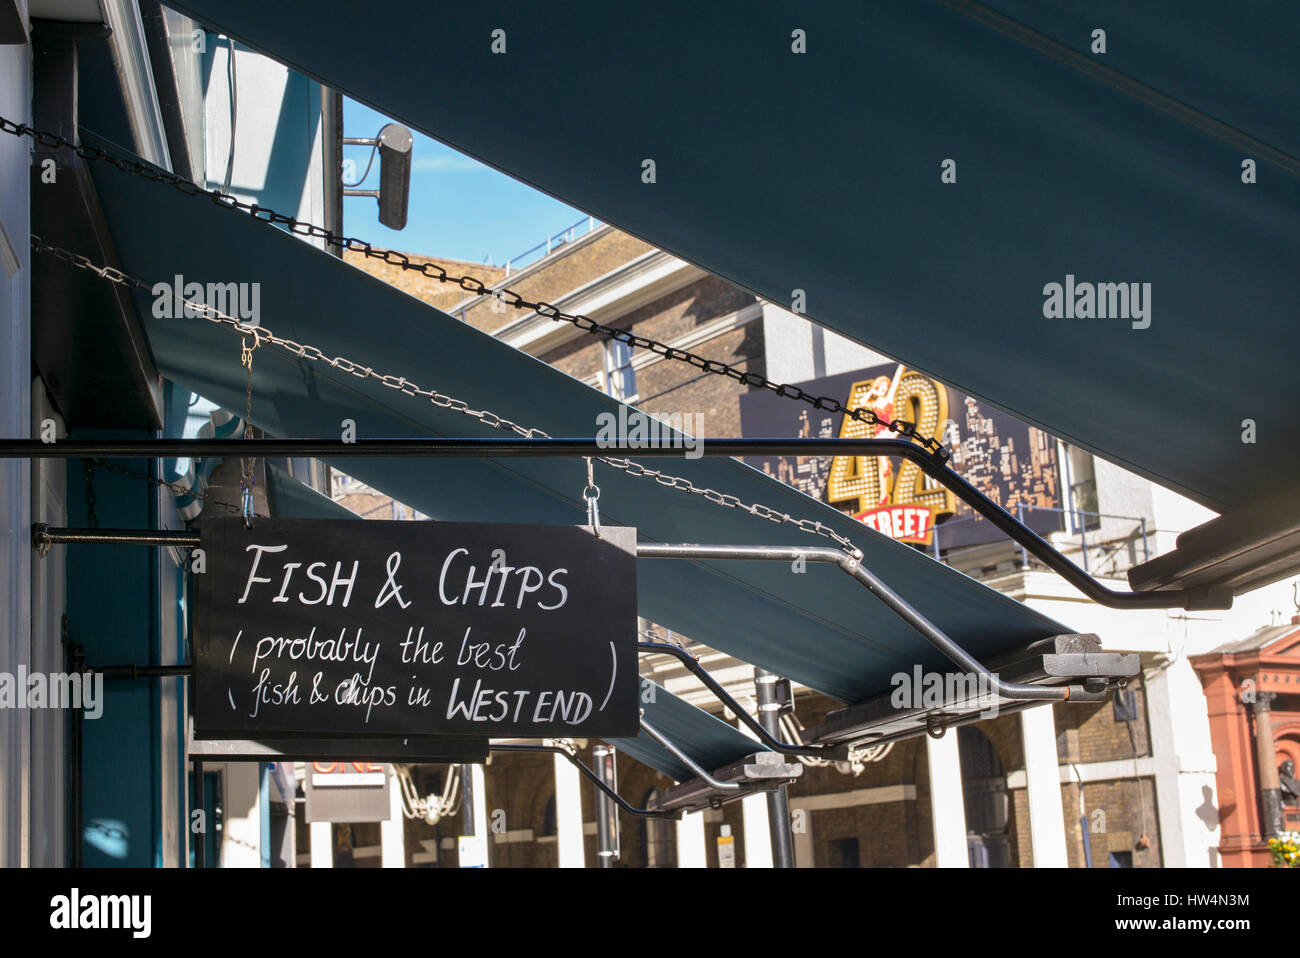 Traditional fish and chips sign. Youngs, Marquess of anglesey, Russell street, West End, London, UK - Stock Image